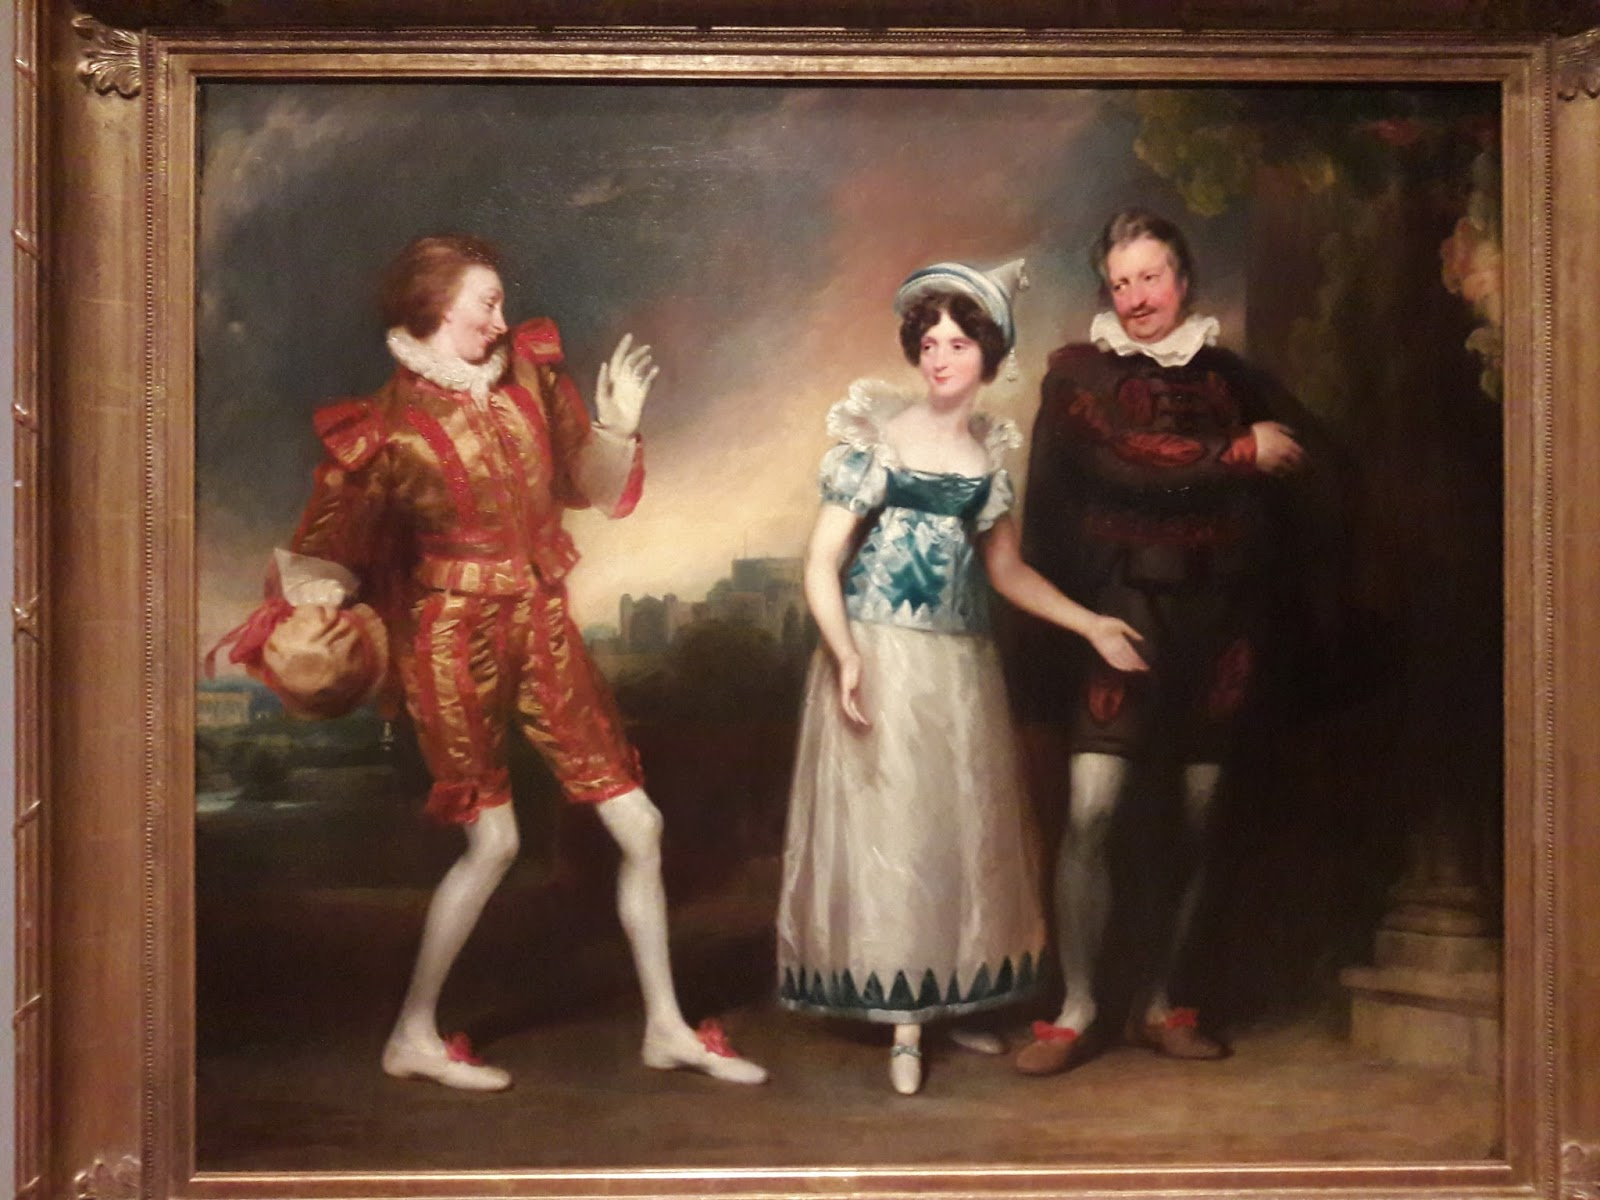 Another I Especially Liked Was Master Page, Anne Page, And Slender, By John  Downman, Ara This Painting, Also From About 1810, Depicts A Scene From One  Of